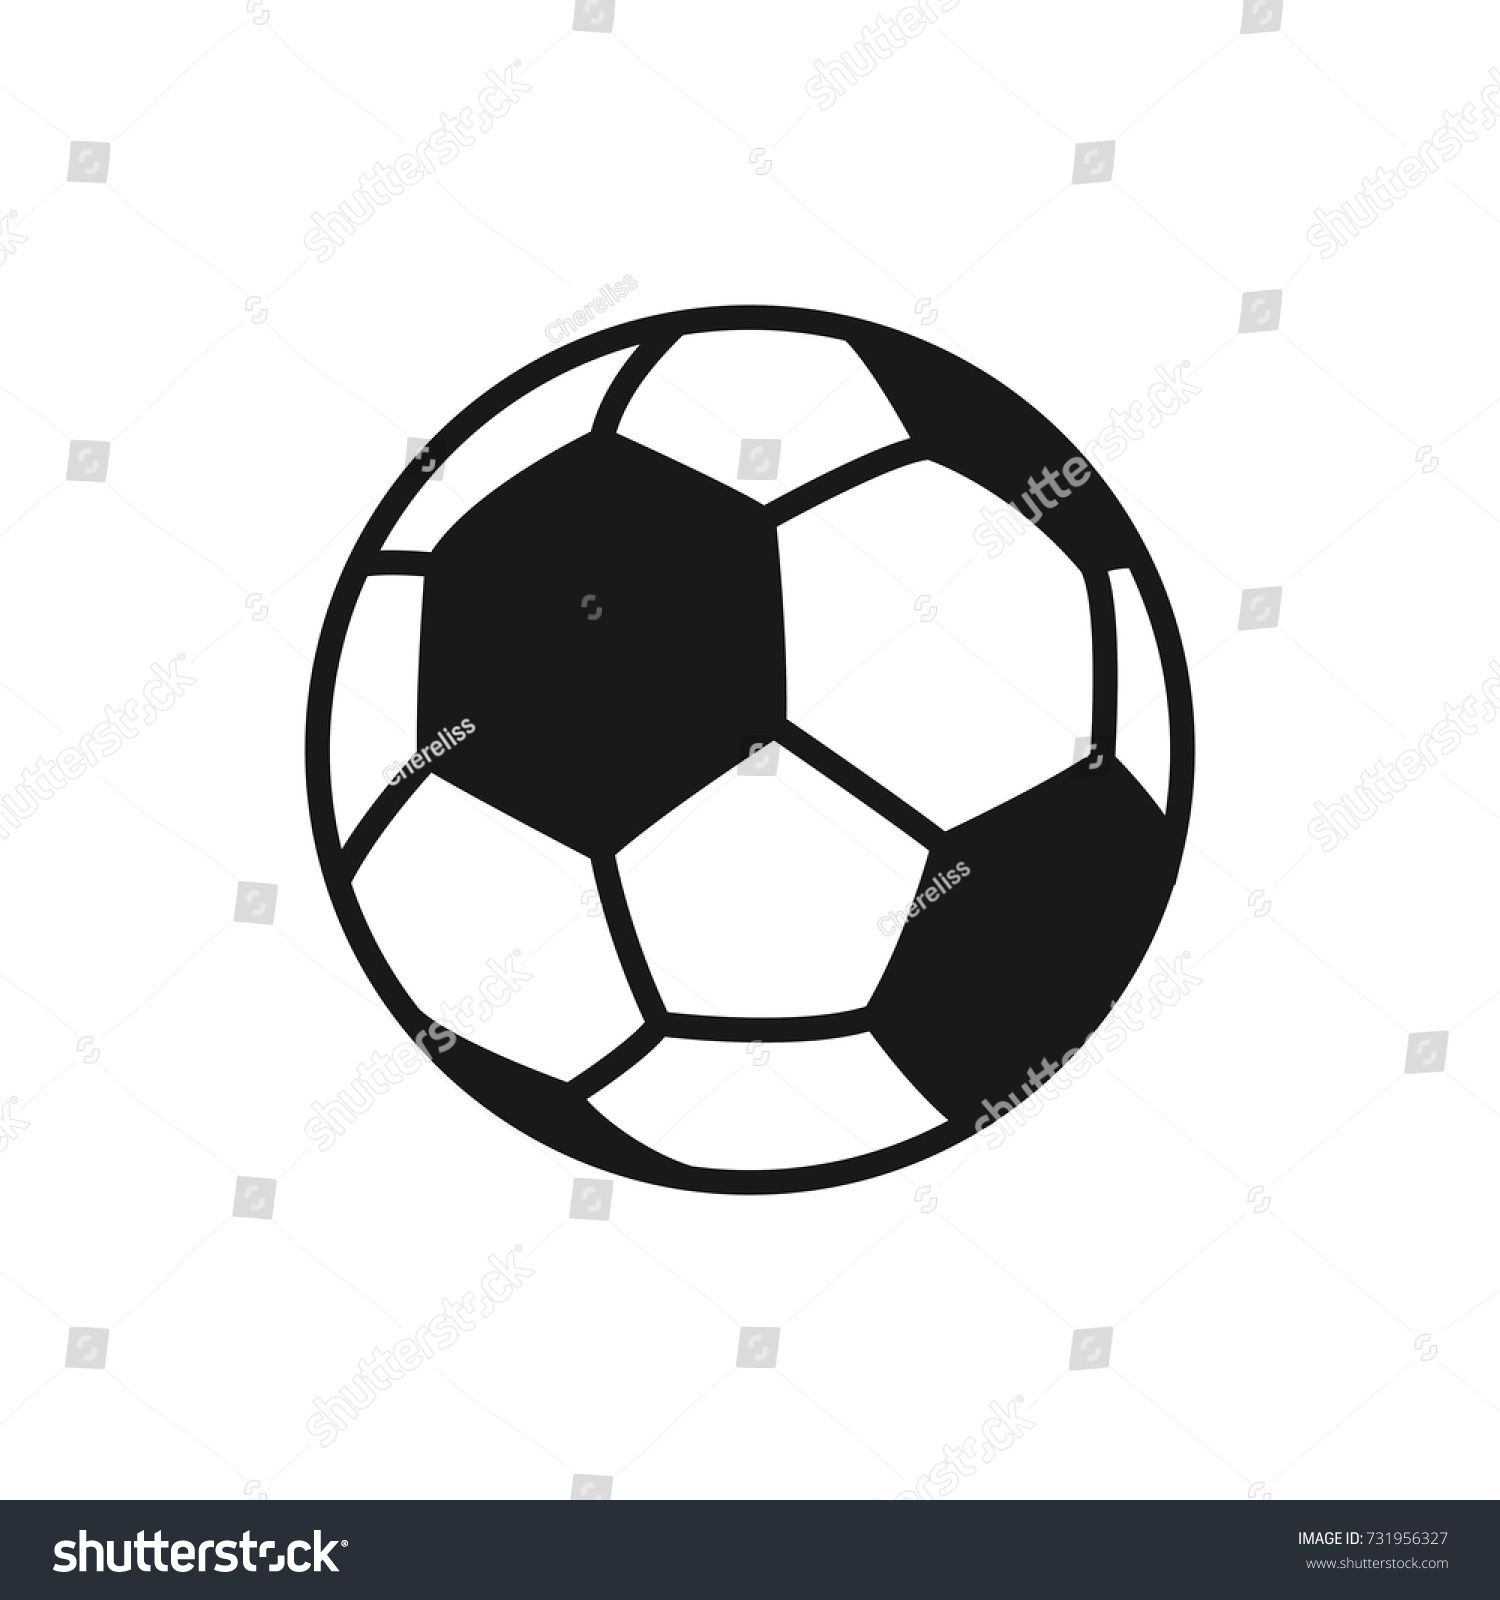 Soccer Ball Football Vector Icon Of Soccer Ball Isolated On White Background Flat Vector Illustration Vector Icon Soccer Soccer Ball Soccer Football Soccer